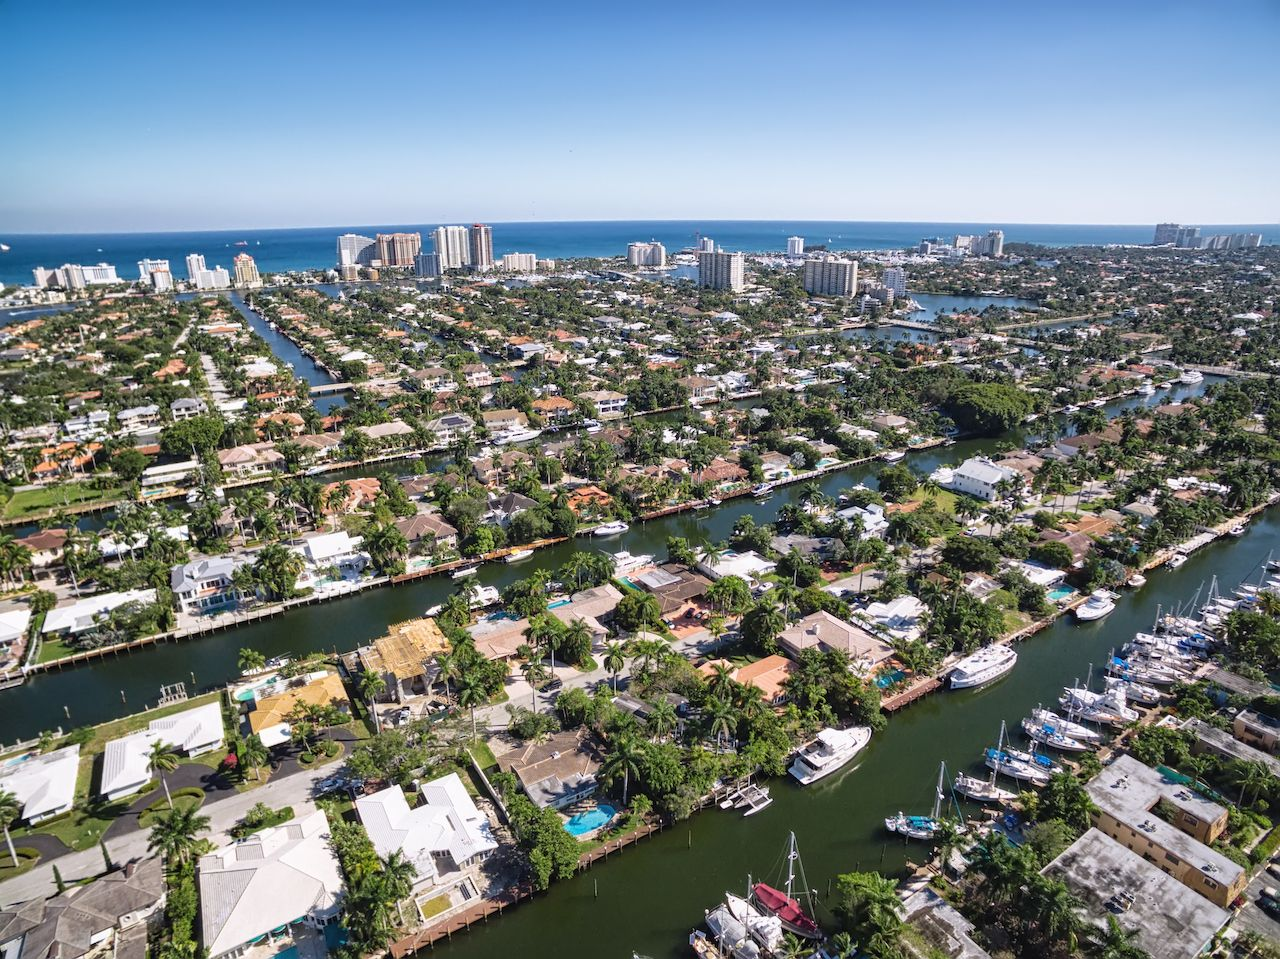 Aerial view of Fort Lauderdale Las Olas Isles, Florida